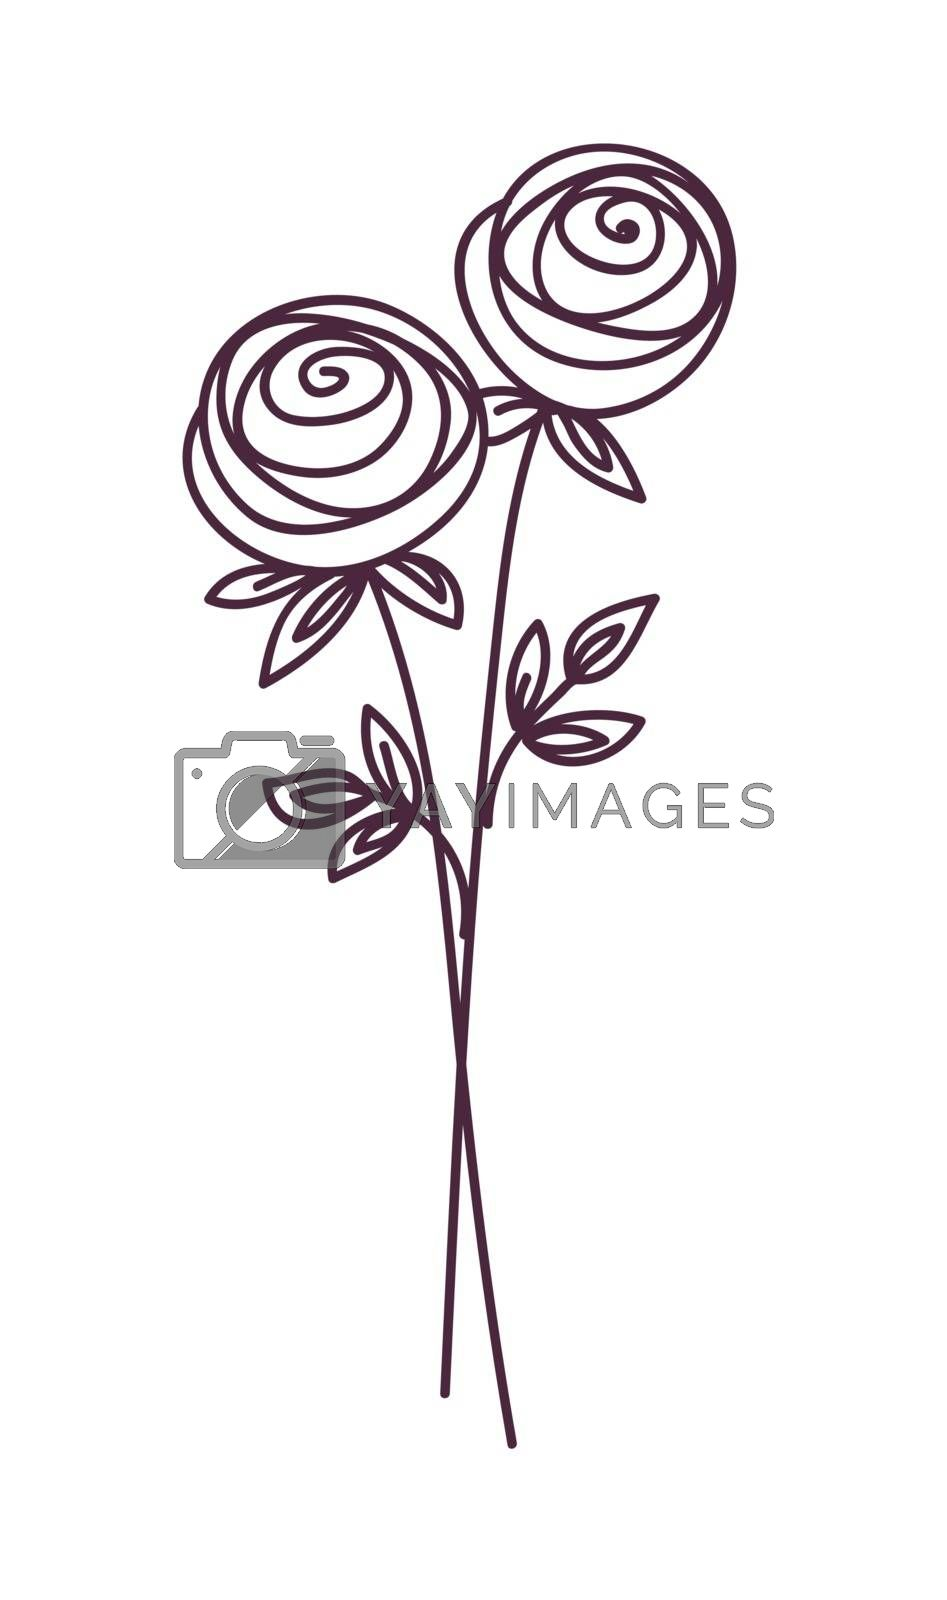 Rose. Stylized flower symbol set. Outline hand drawing icon. Decorative element for wedding, birthday design.